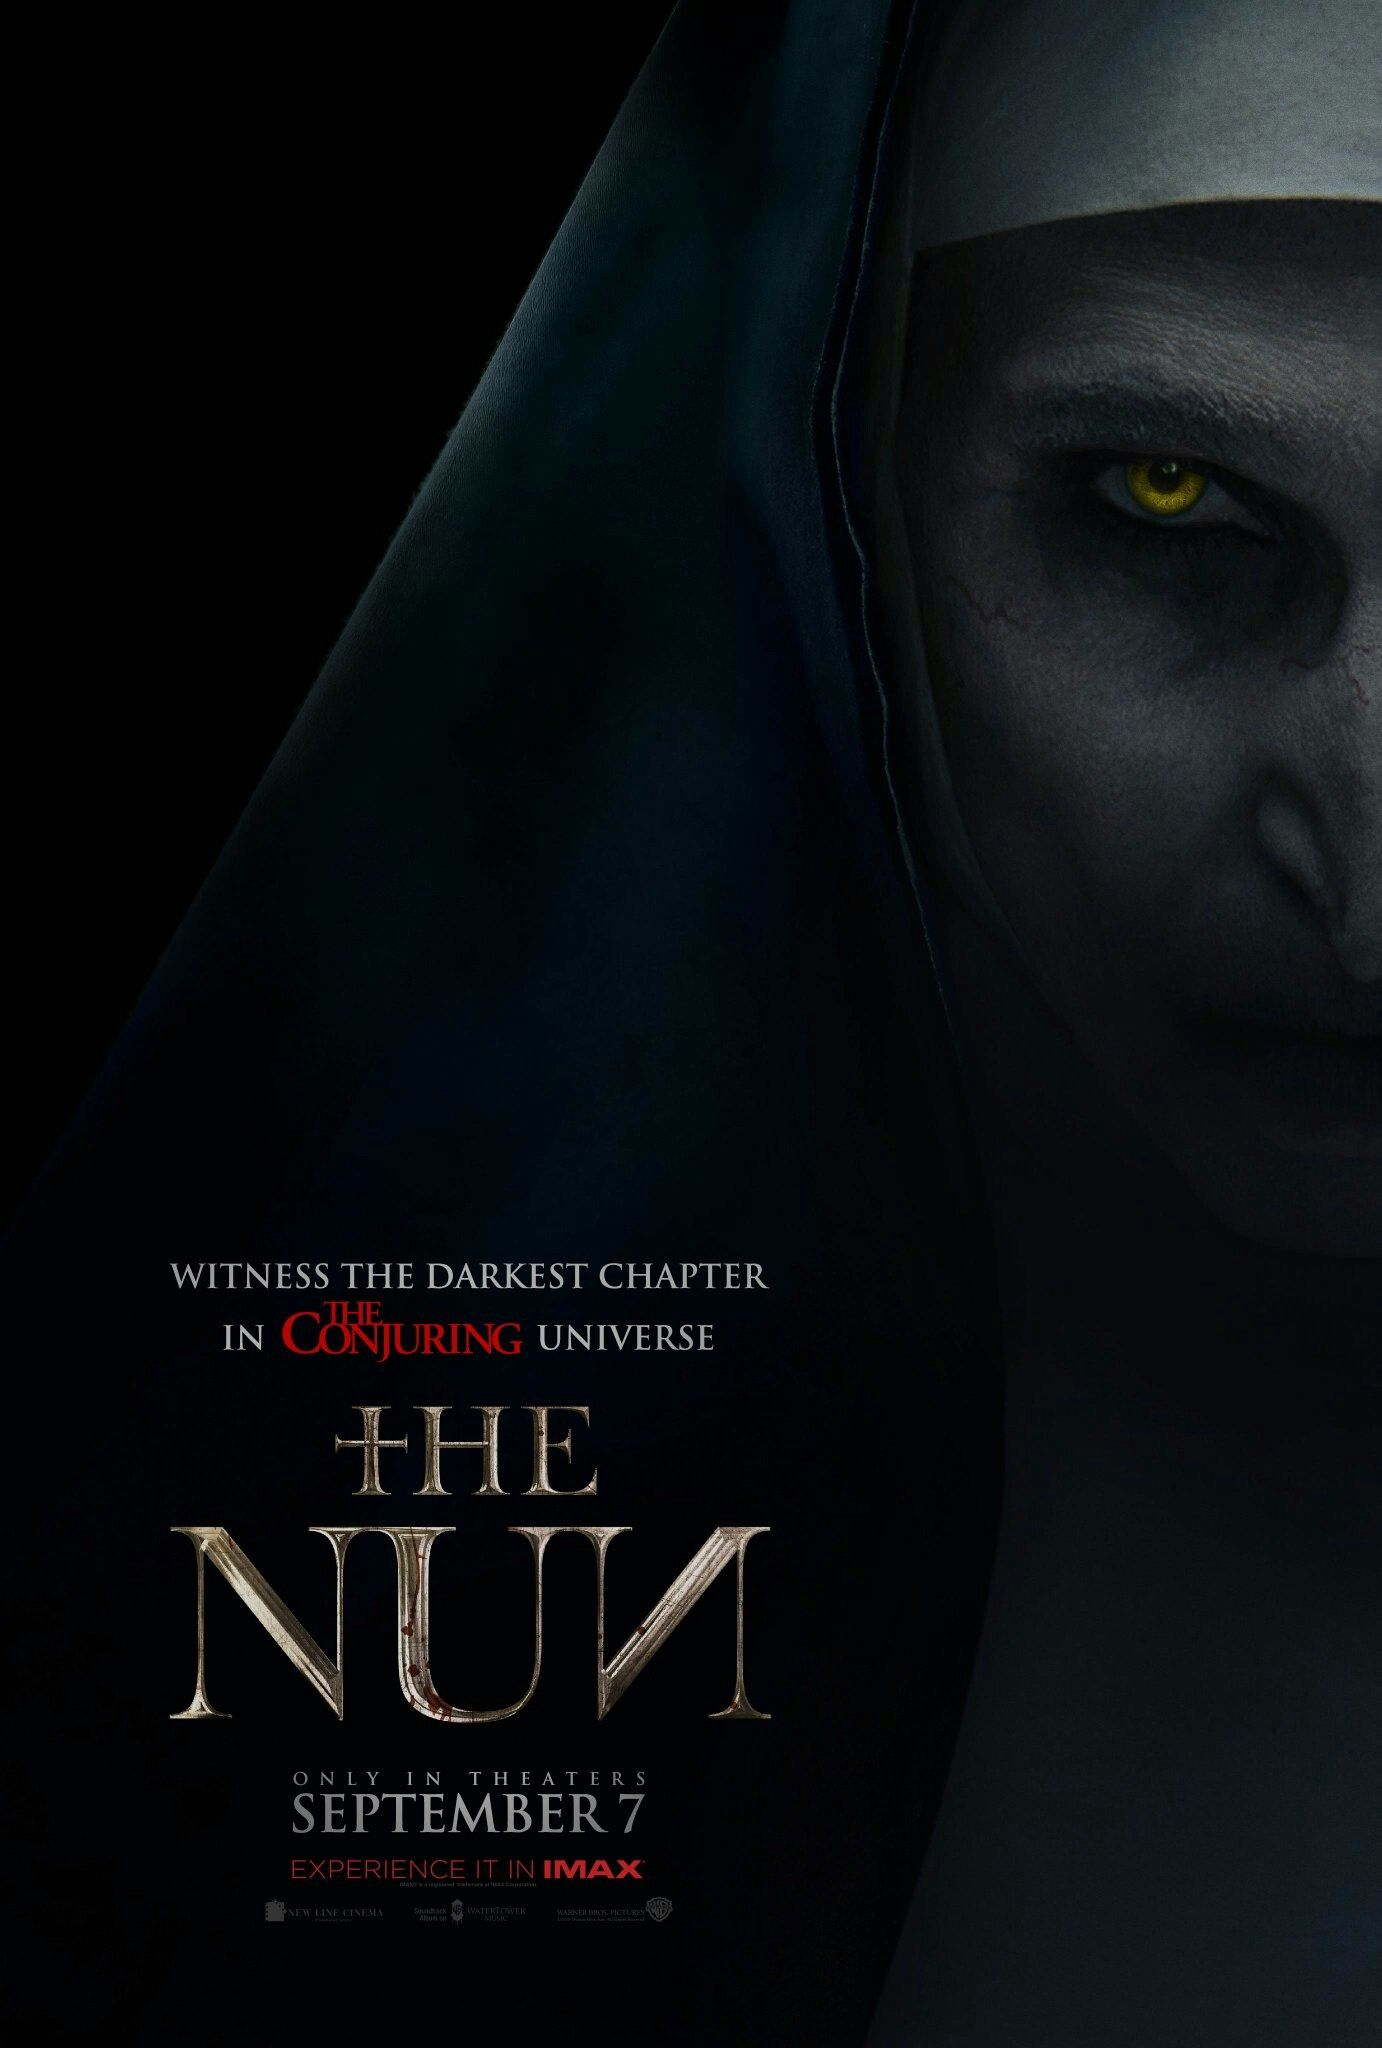 Nonton Streaming The Nun : nonton, streaming, Conjuring, Movies,, Movies, Online,, Online